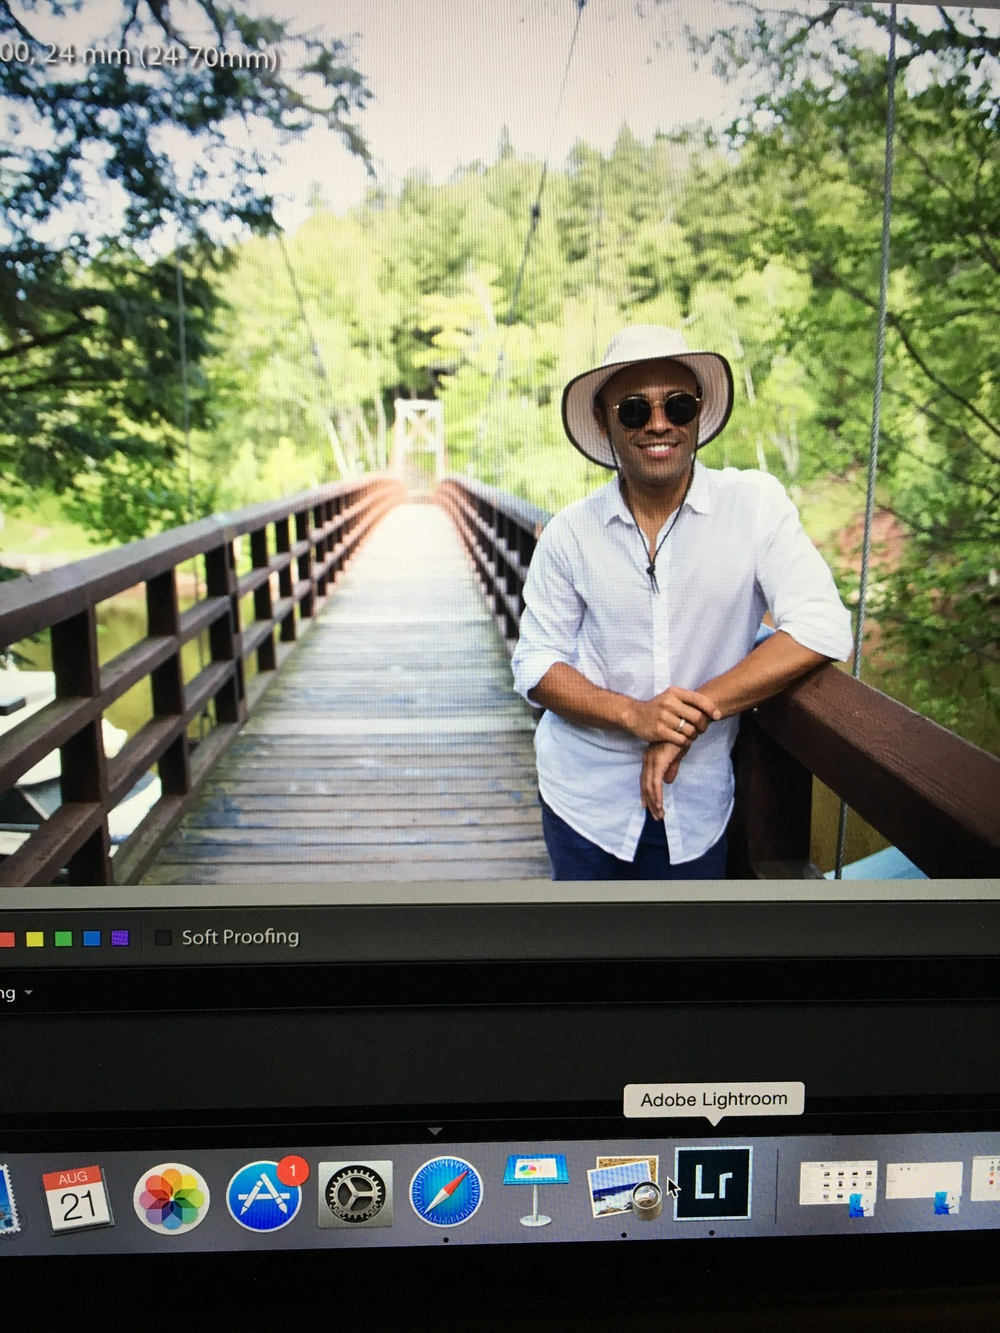 Sneak peek - a photo of a photo on my computer